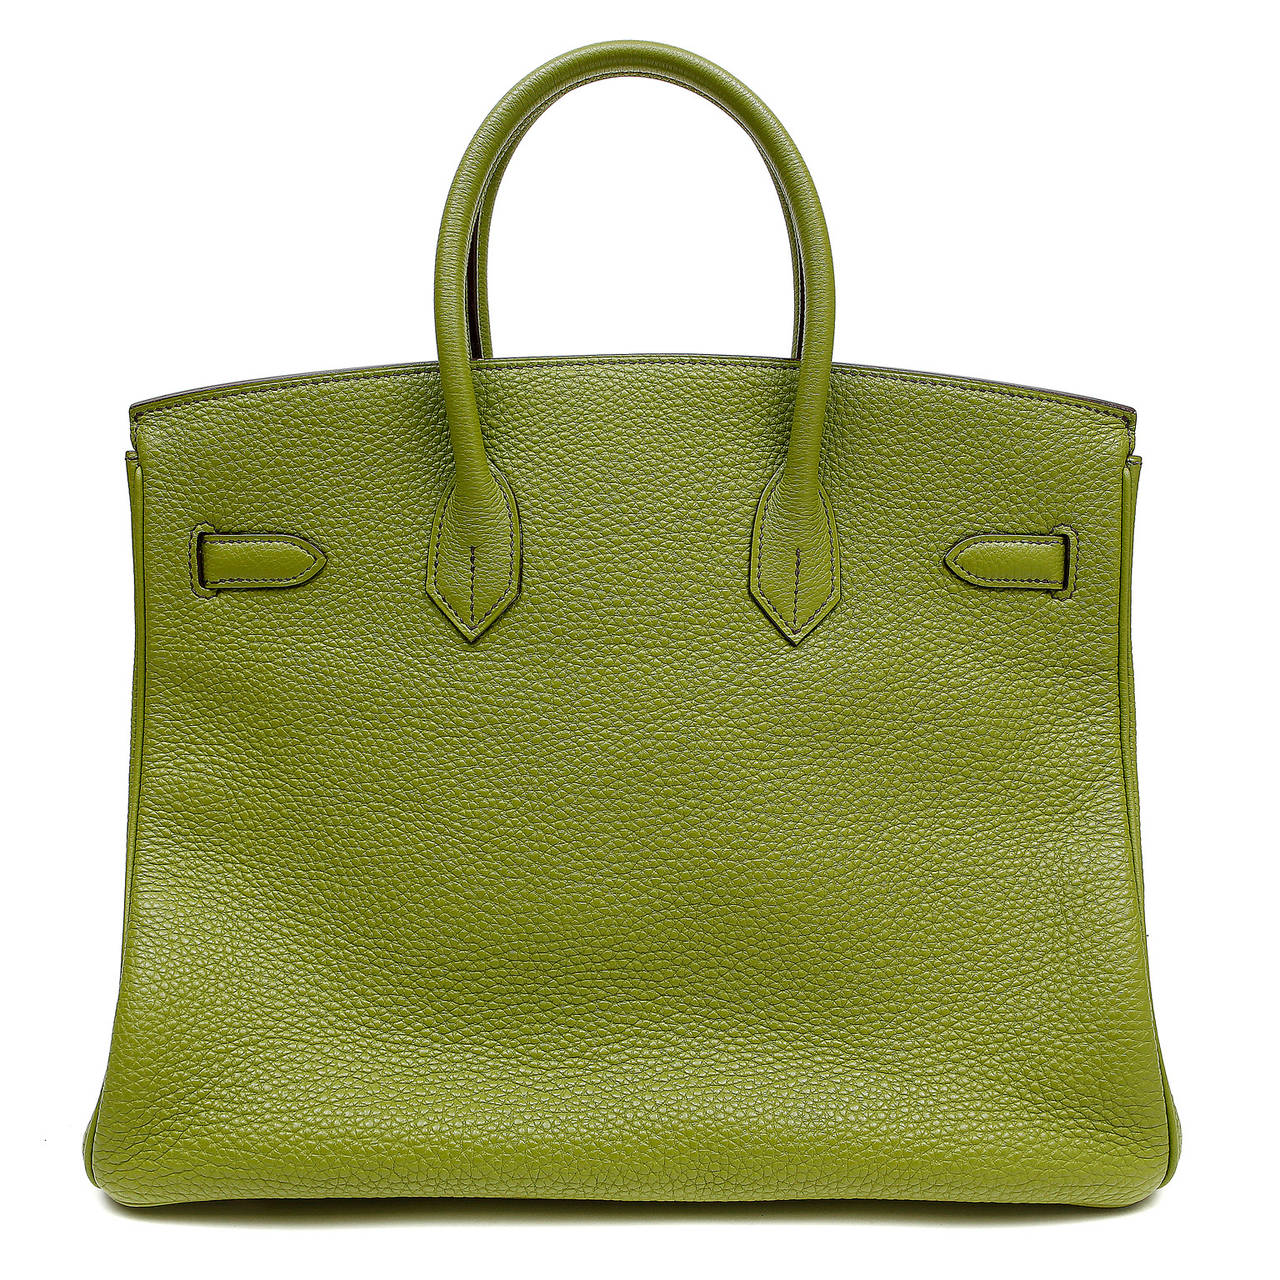 hermes vert anis green togo 35 cm birkin with phw hermes bag. Black Bedroom Furniture Sets. Home Design Ideas